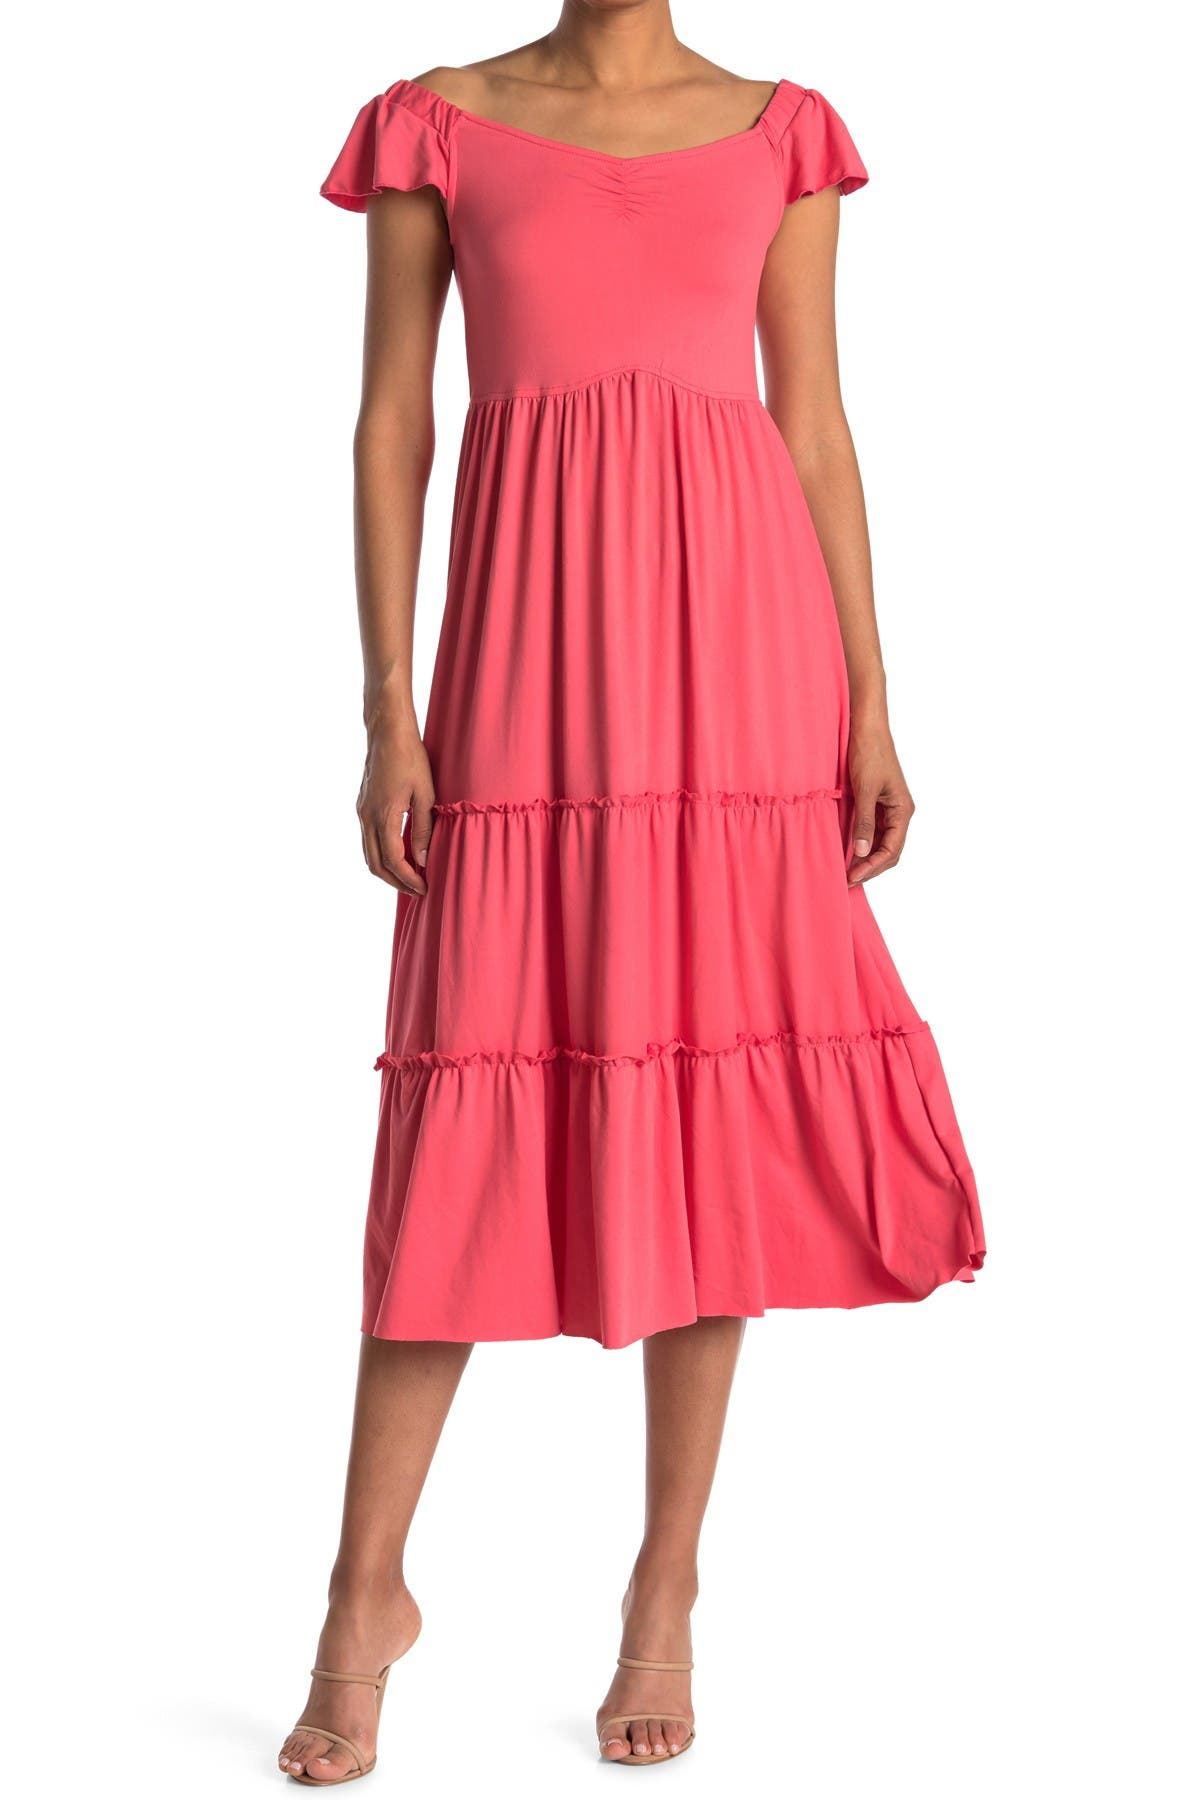 Image of Velvet Torch Maxi Tiered Dress